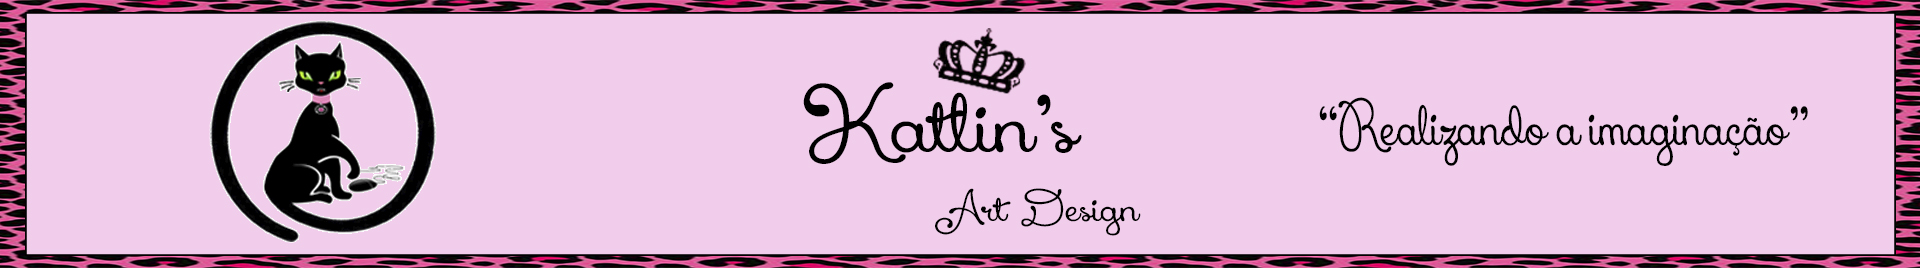 Katlin's Art Design